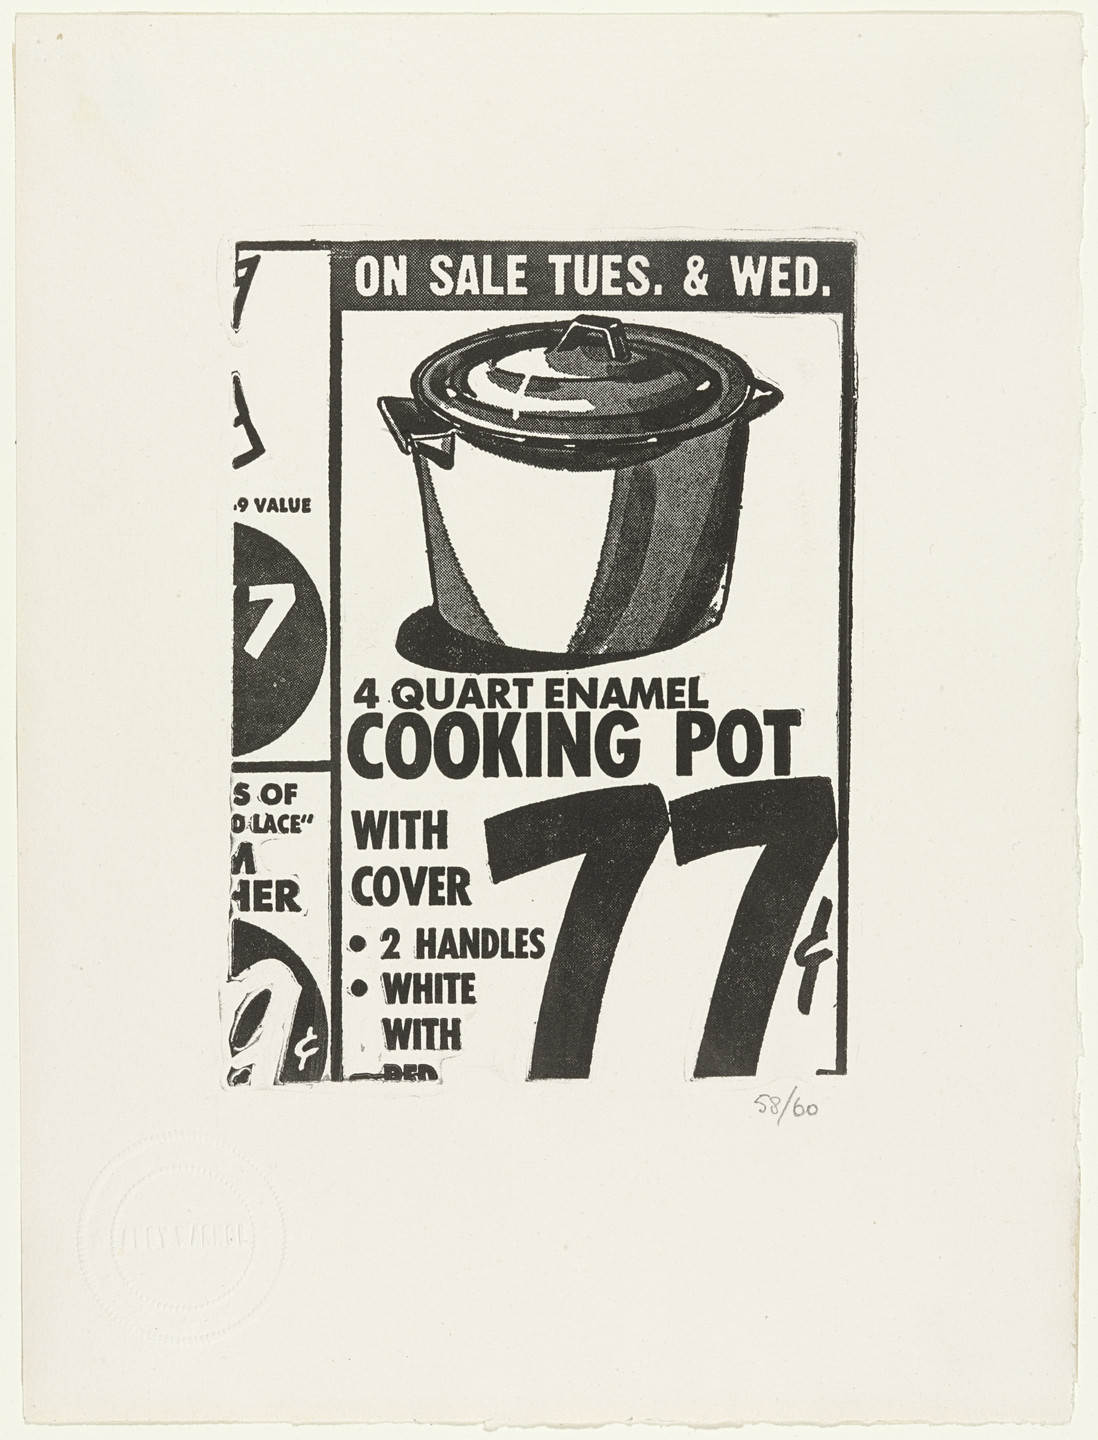 Andy Warhol. Cooking Pot (plate 18) from The International Anthology of Contemporary Engraving: The International Avant-Garde, Volume 5: America Discovered (Anthologia internazionale dell'incisione contemporanea: L'Avanguardia internazionale: Volume 5: Scoperta dell'America). 1962, published 1964